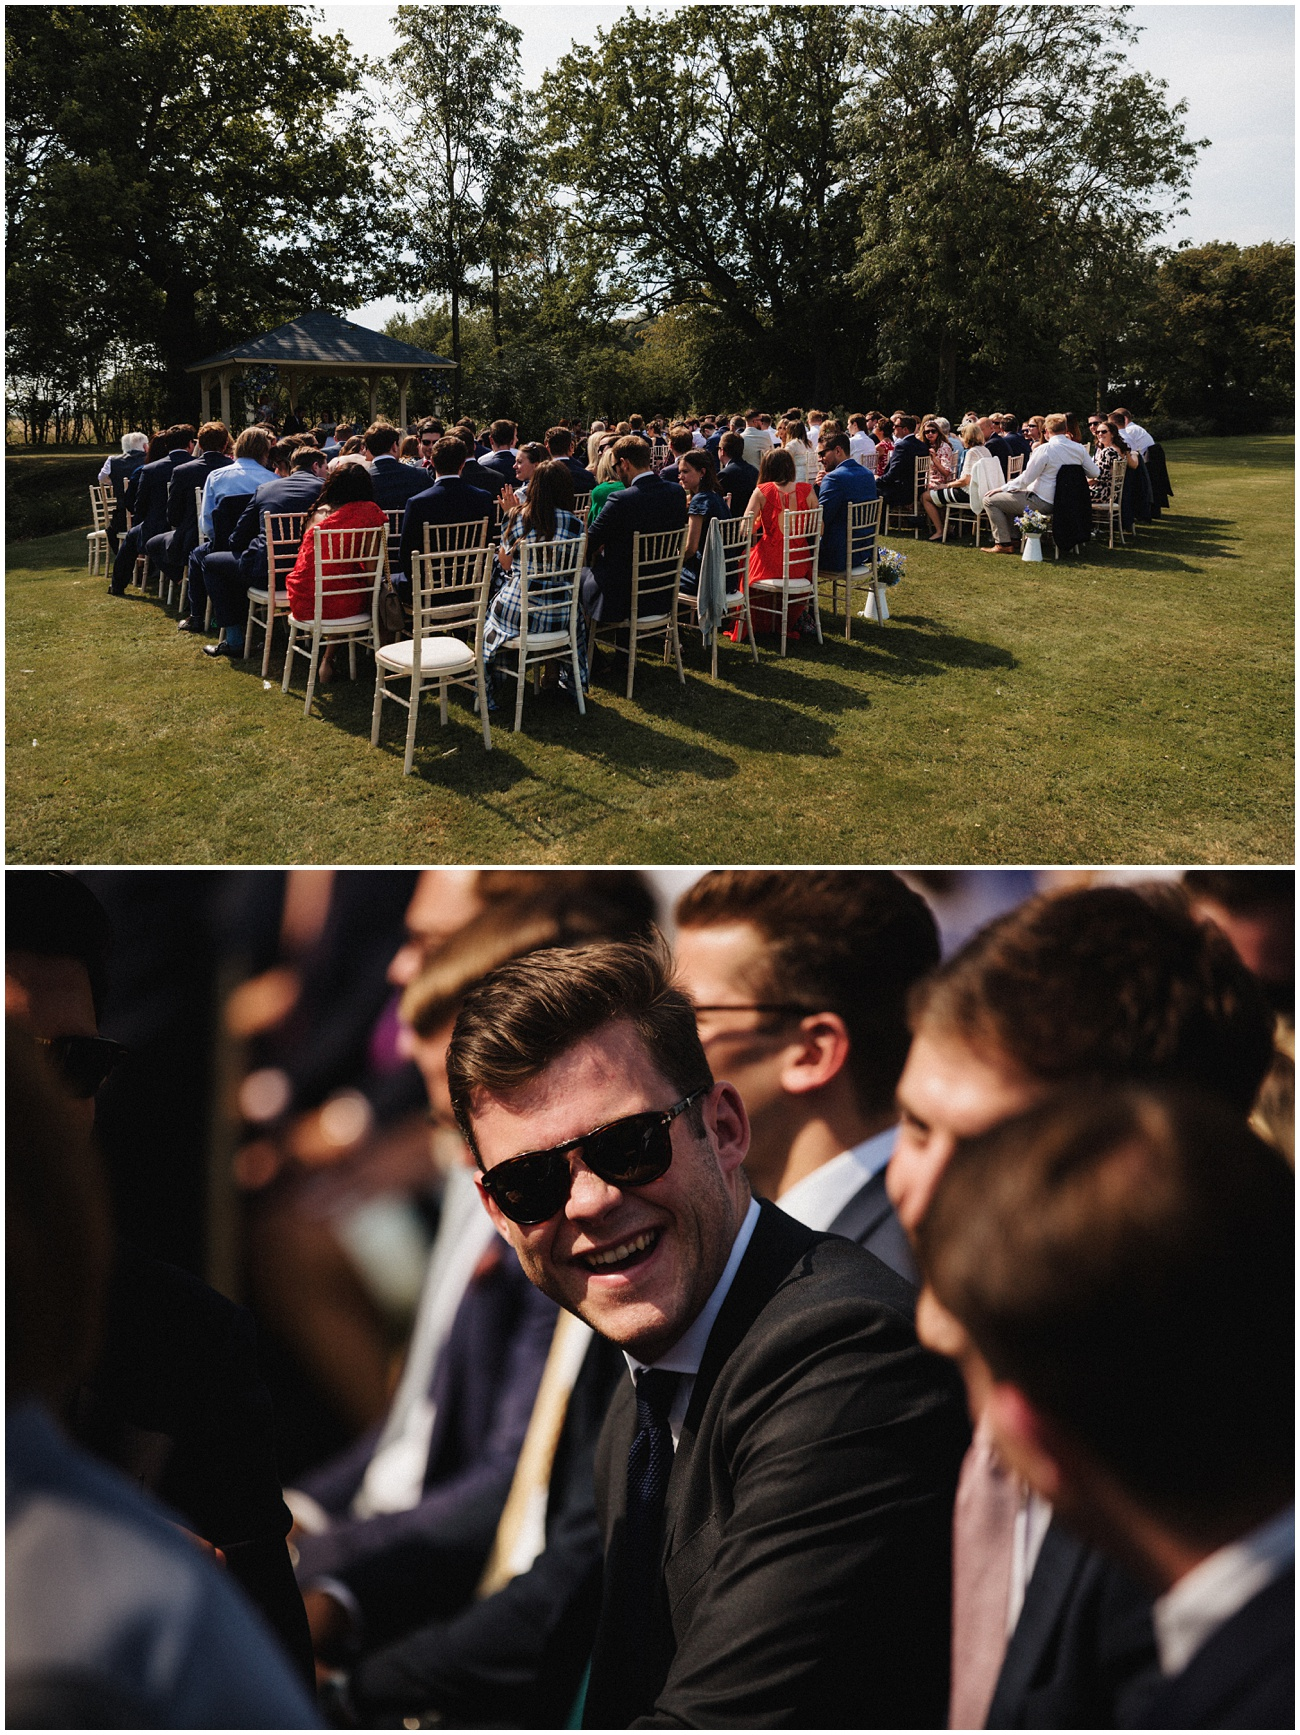 The wedding guests enjoy the sunshine as they sit during the ceremony